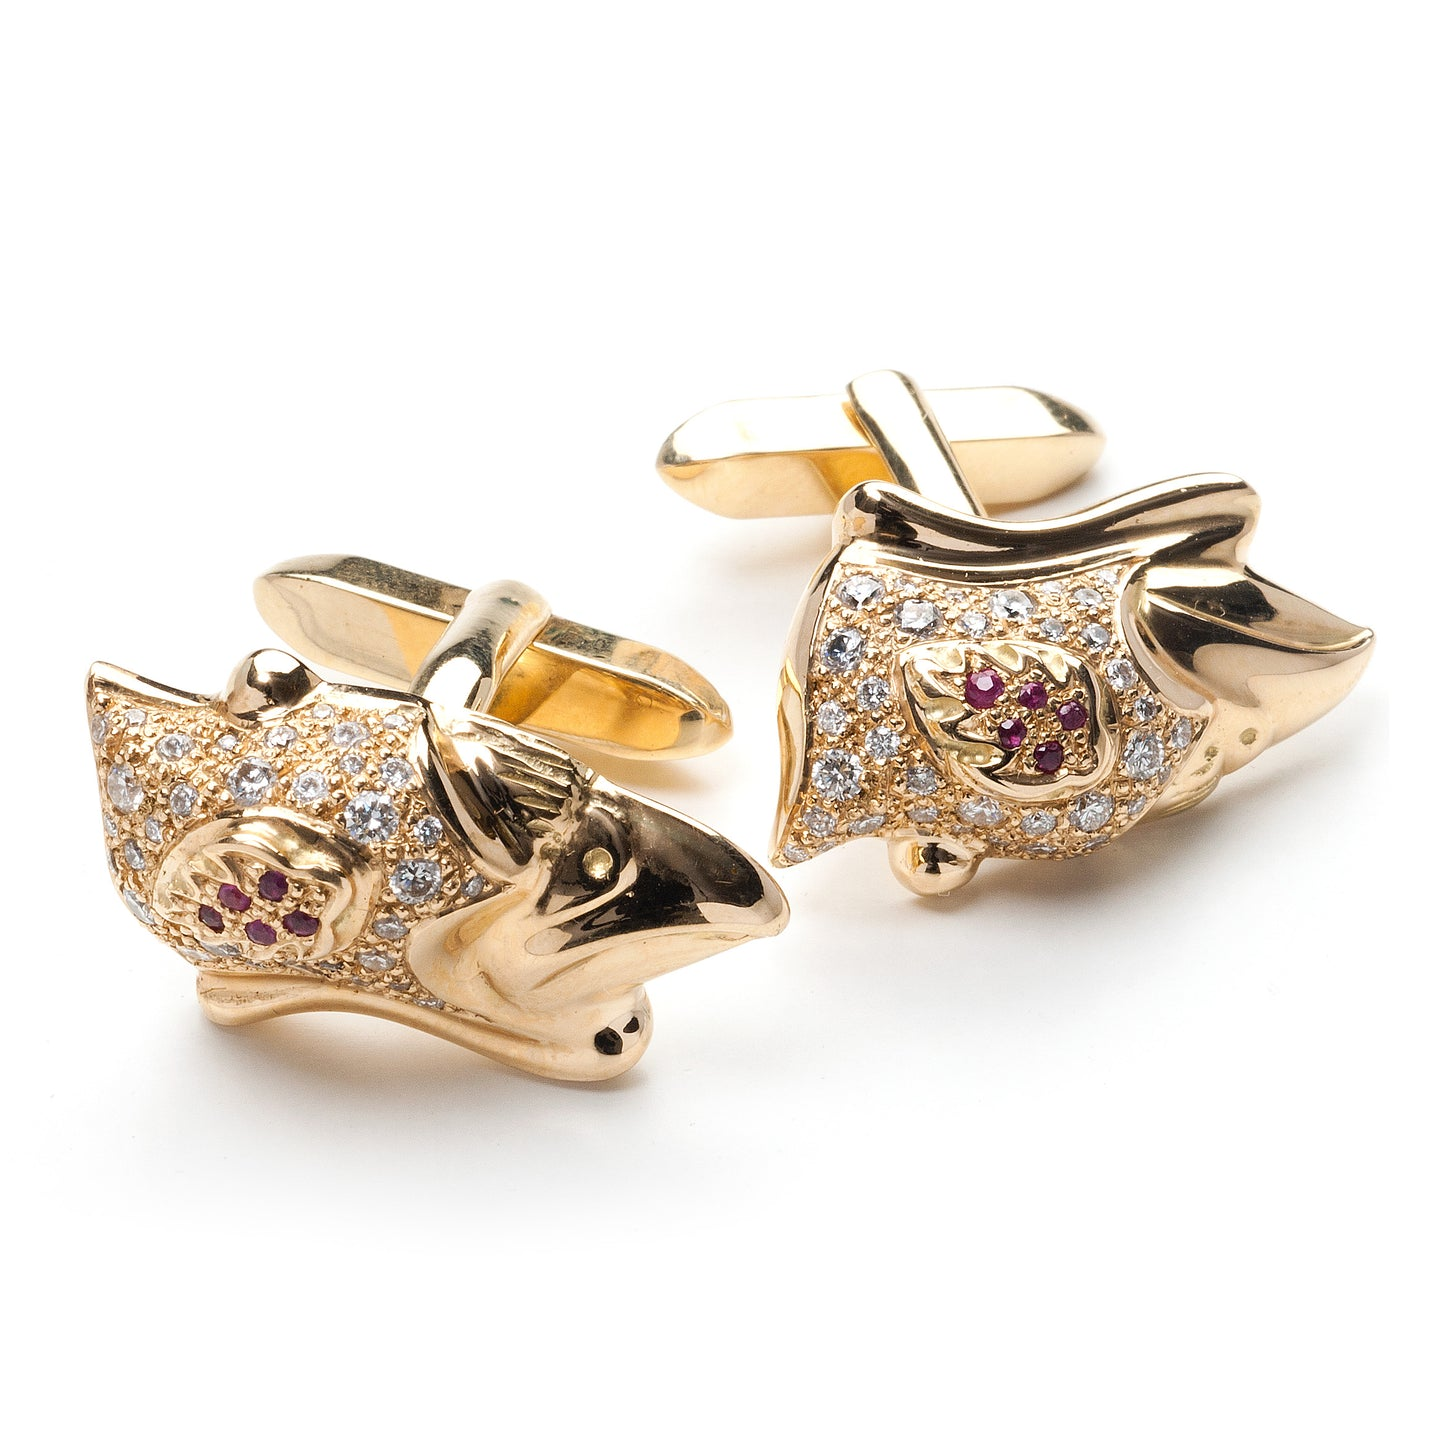 Shahryar Falcon Cufflinks - 18k Yellow Gold